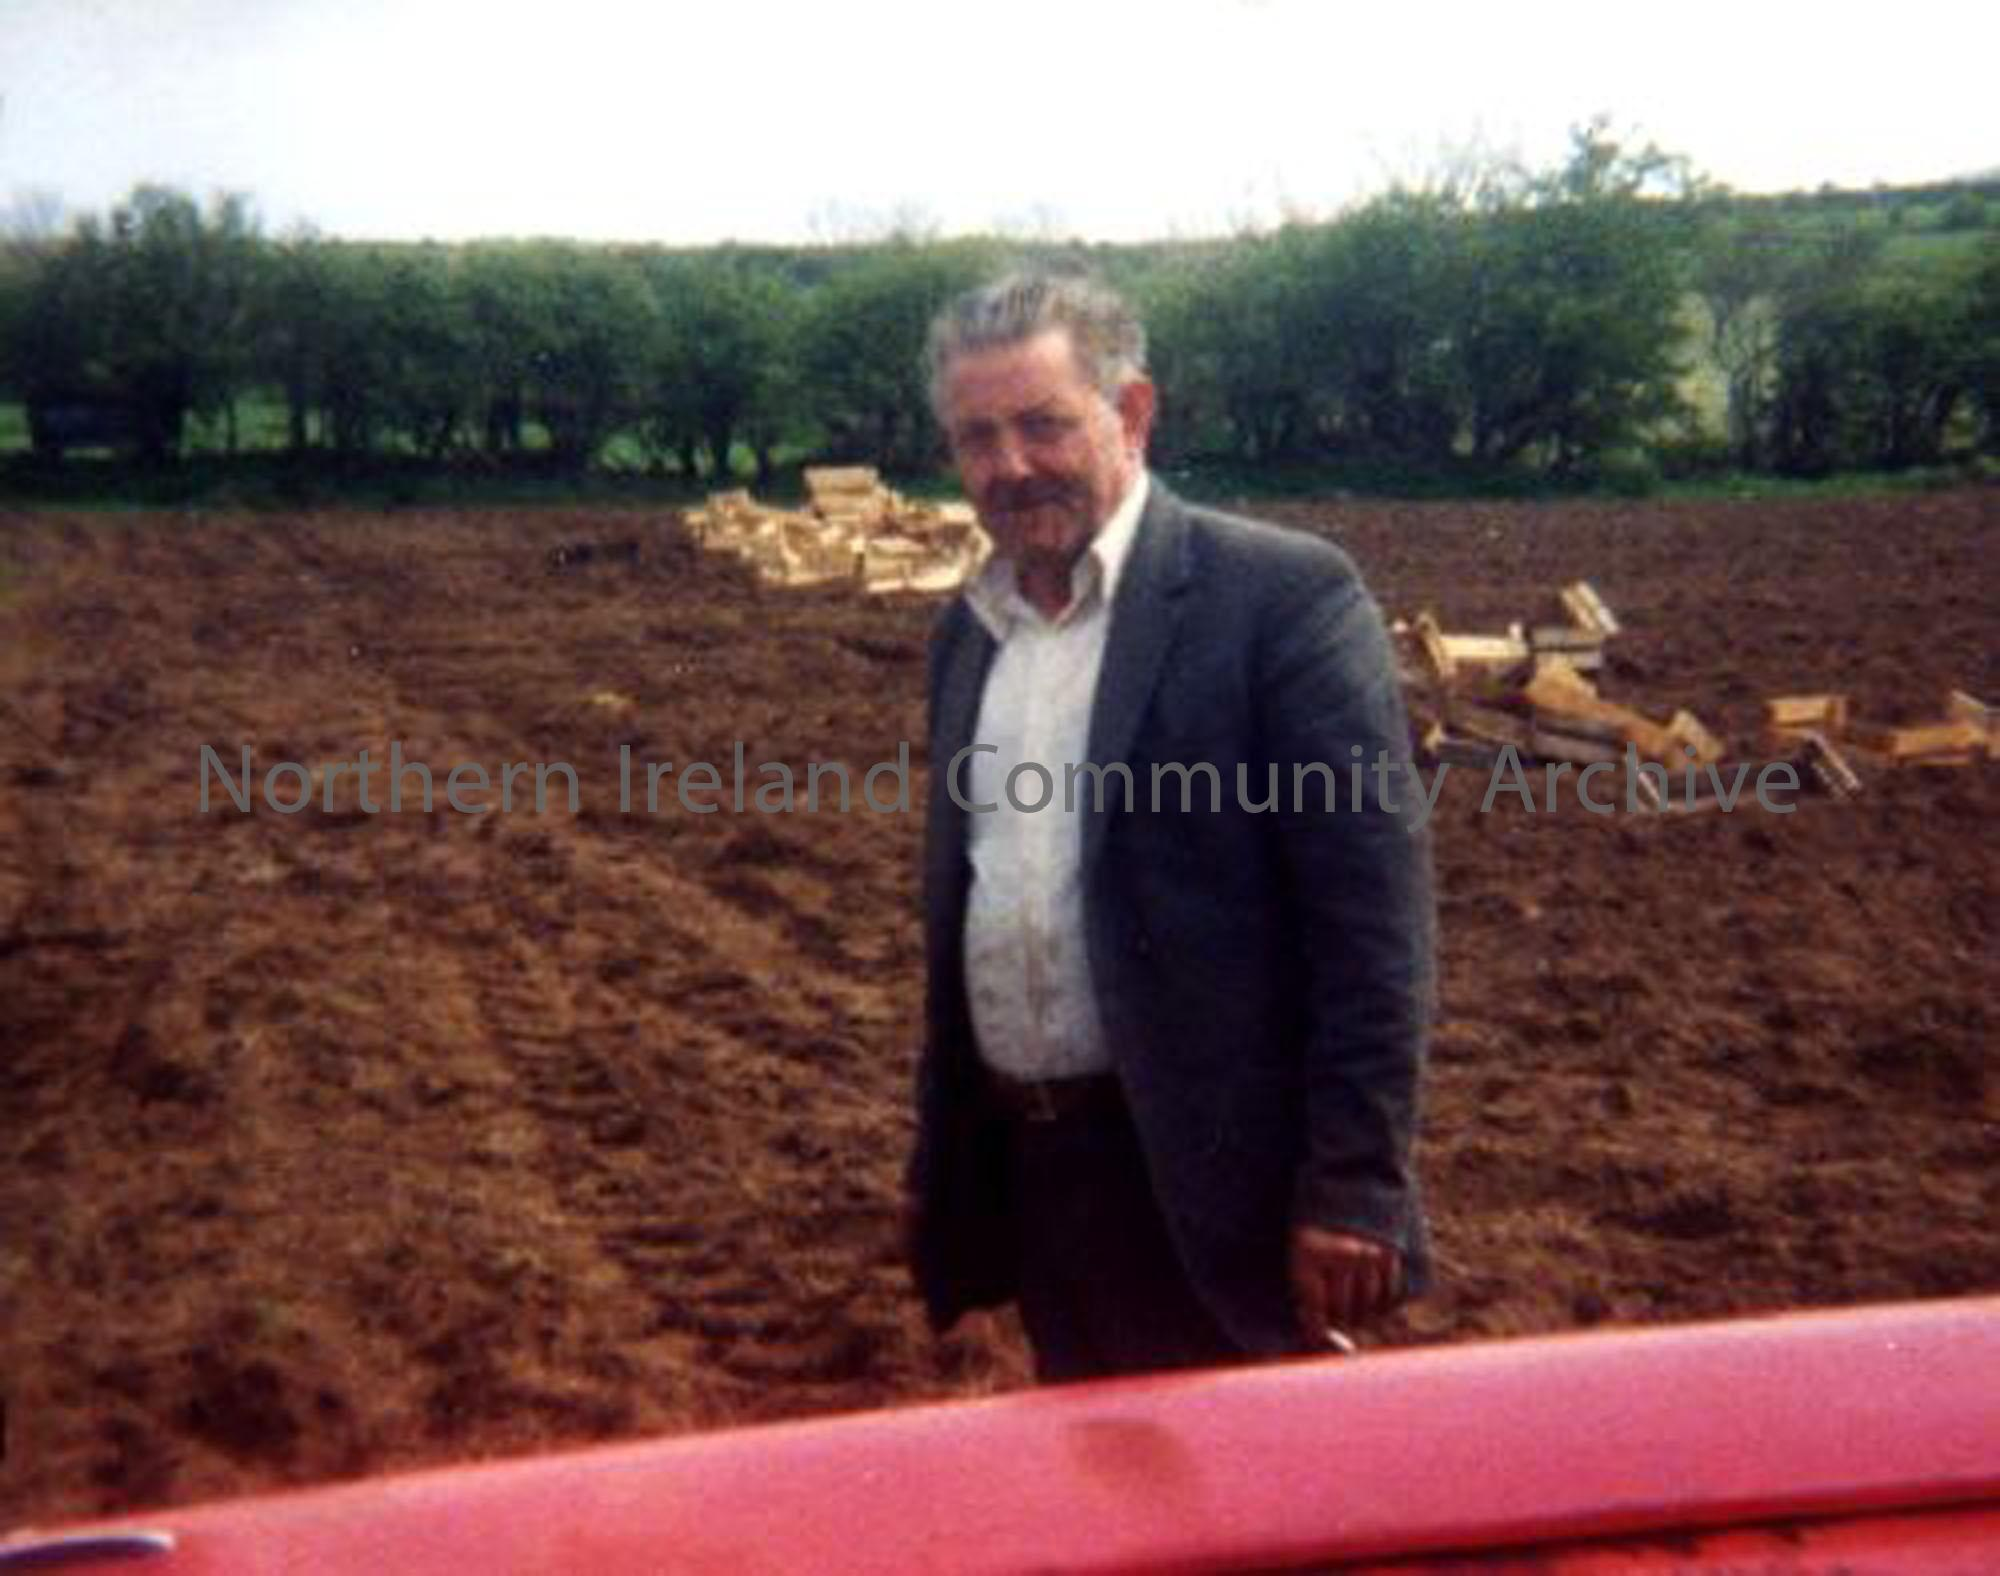 Norman Walker seen here sowing potatoes. Potato boxes can be seen behind him in the field. Norman lives now in Mosside and was originally from Bushside. (2555)